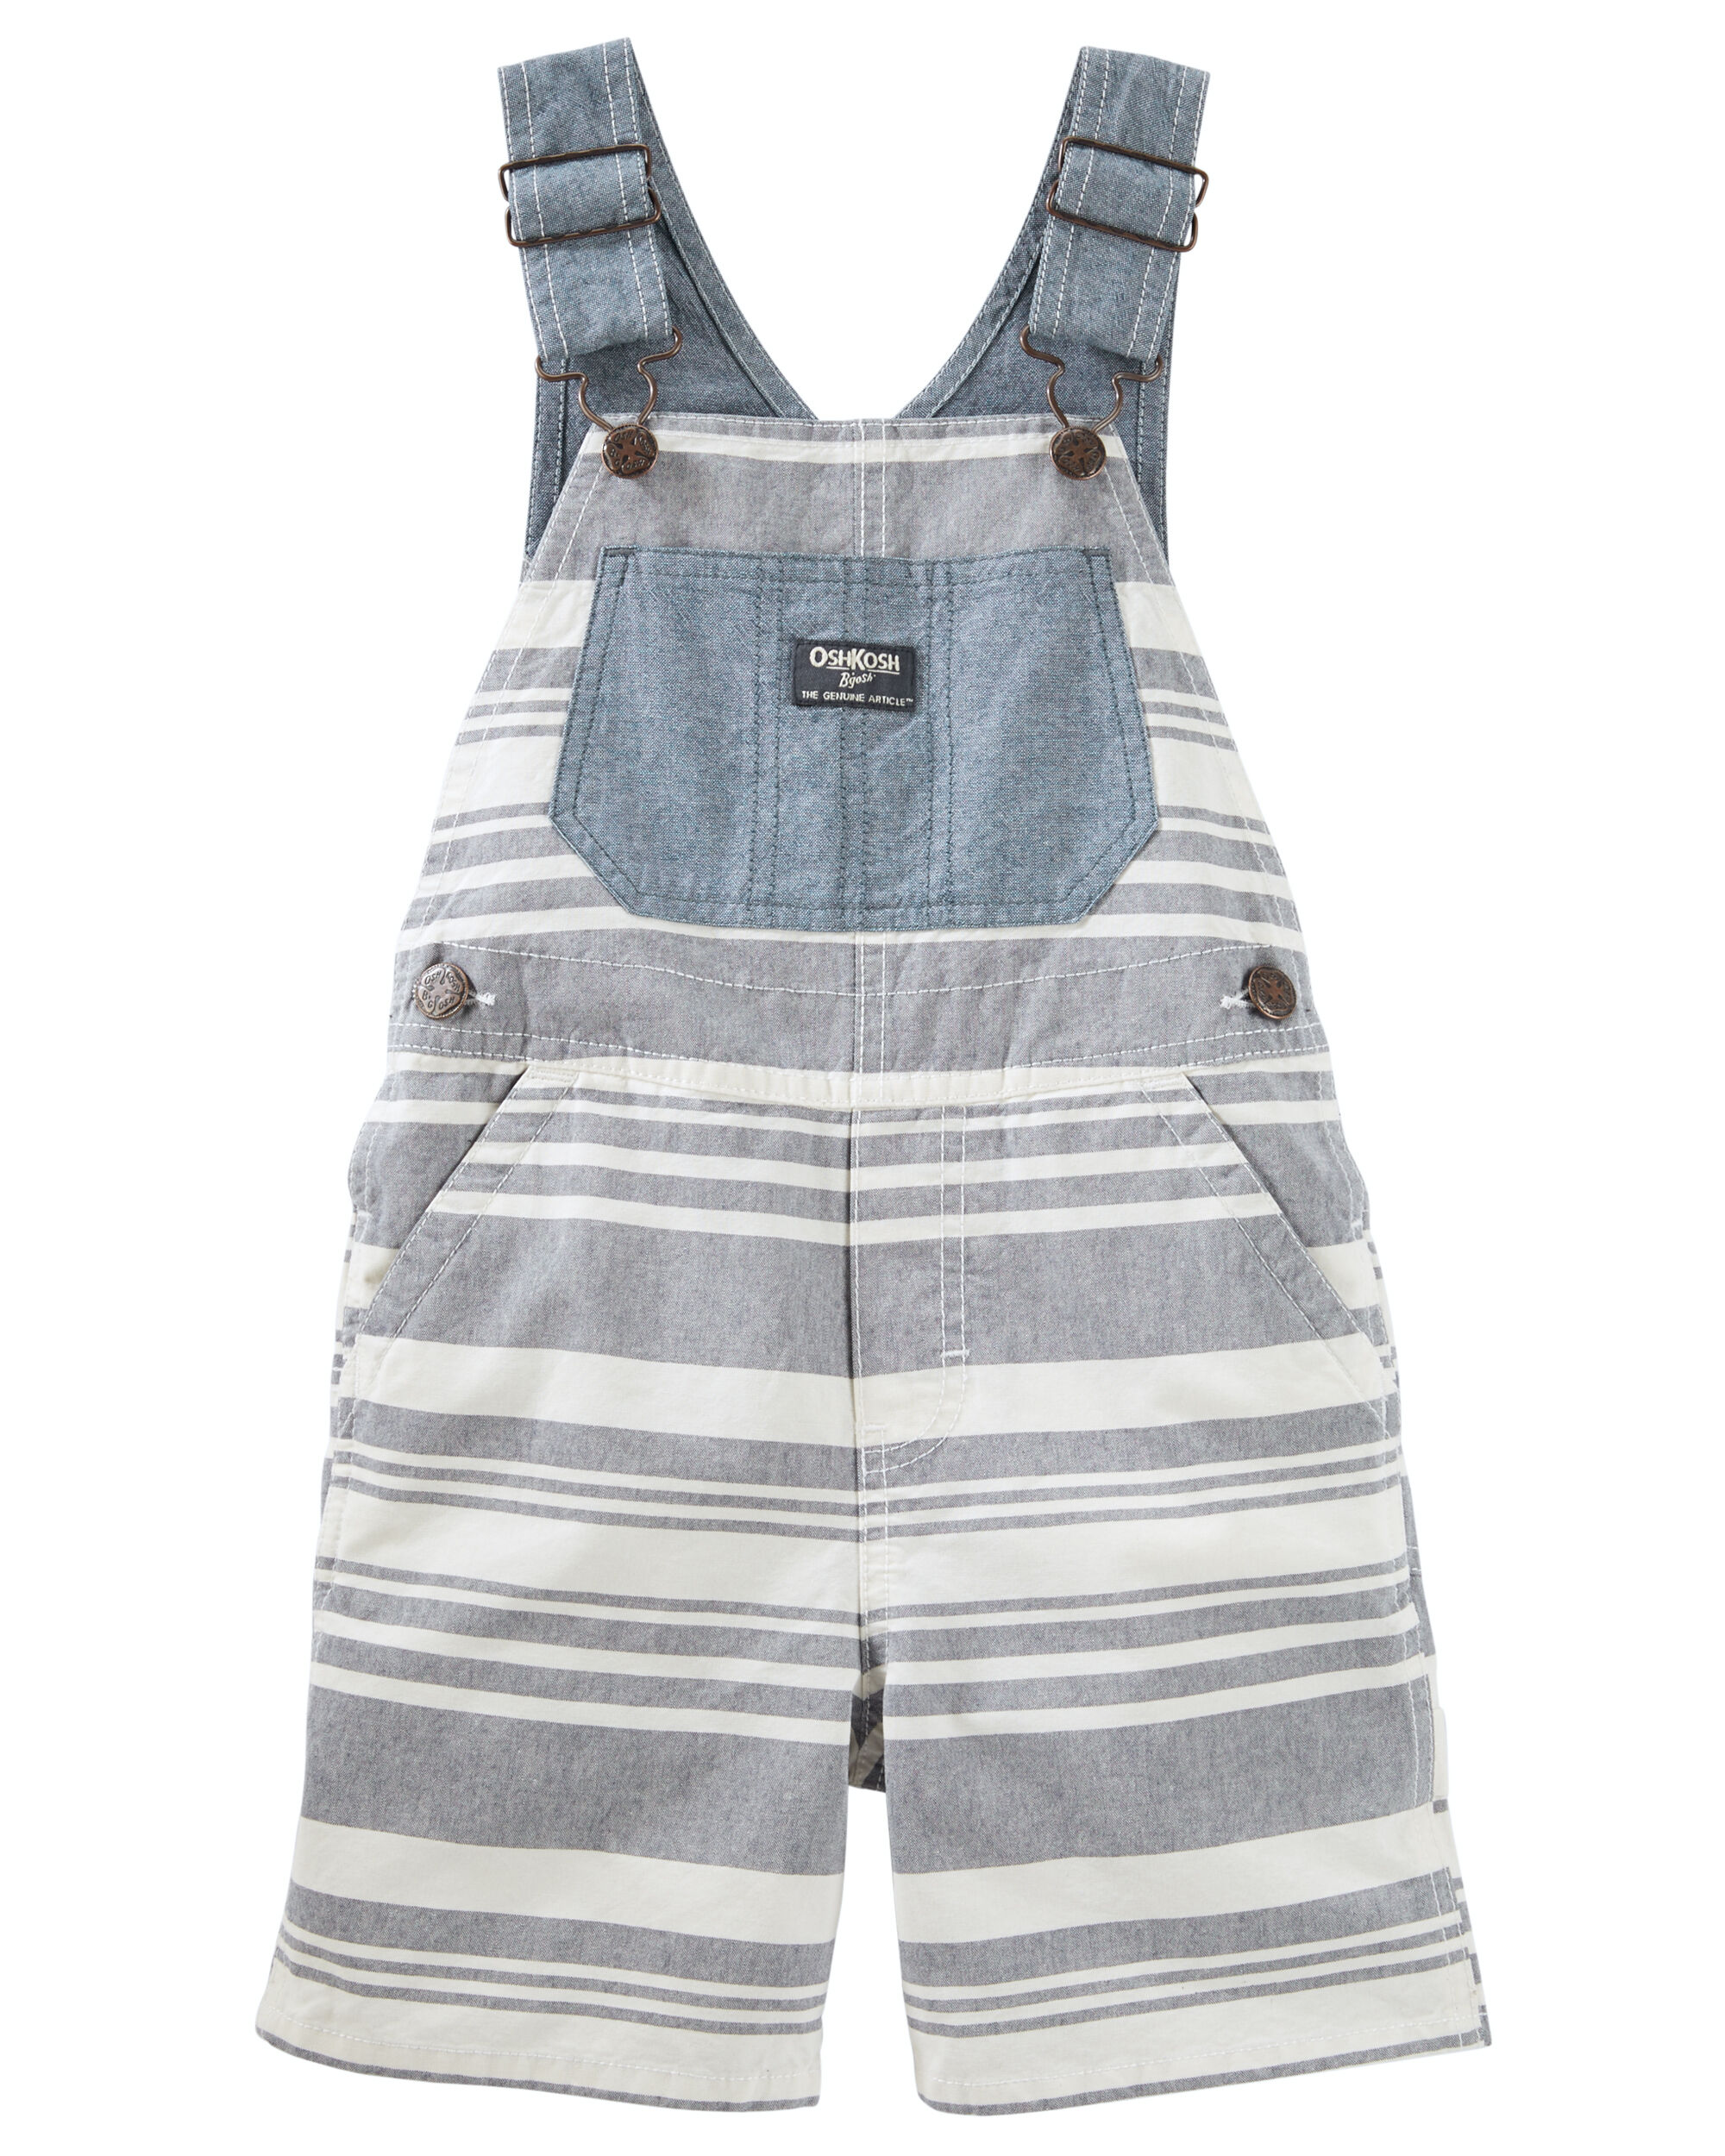 6947f245a Chambray Striped Shortalls. Loading zoom